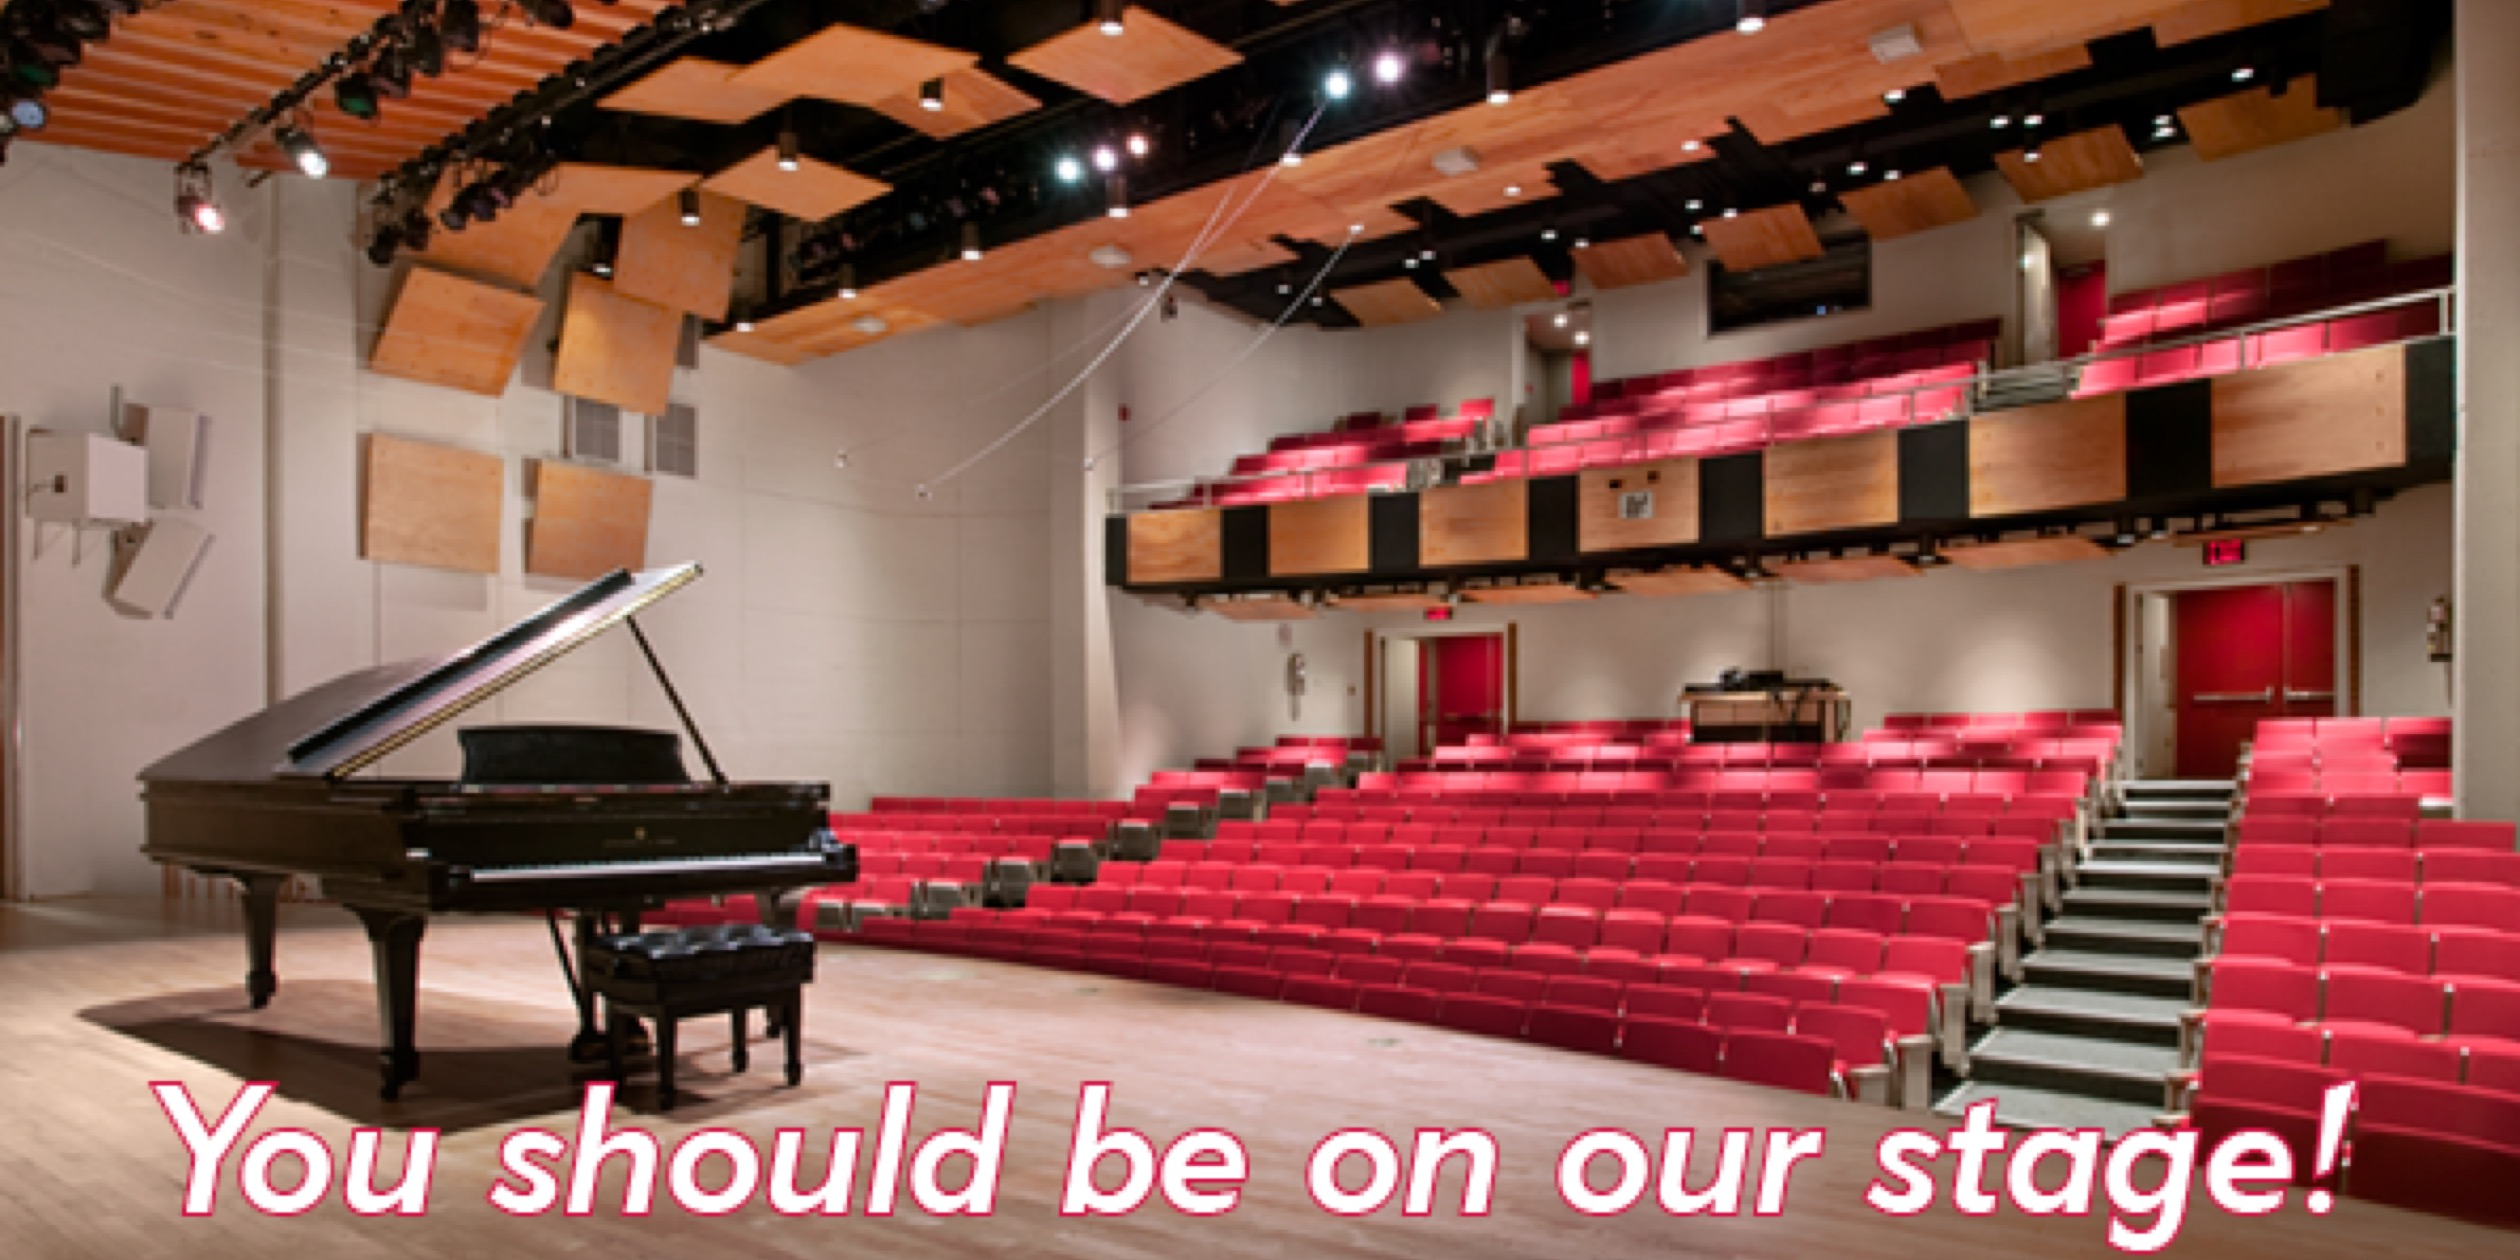 Merkin Concert Hall is perfect for your next concert or event!